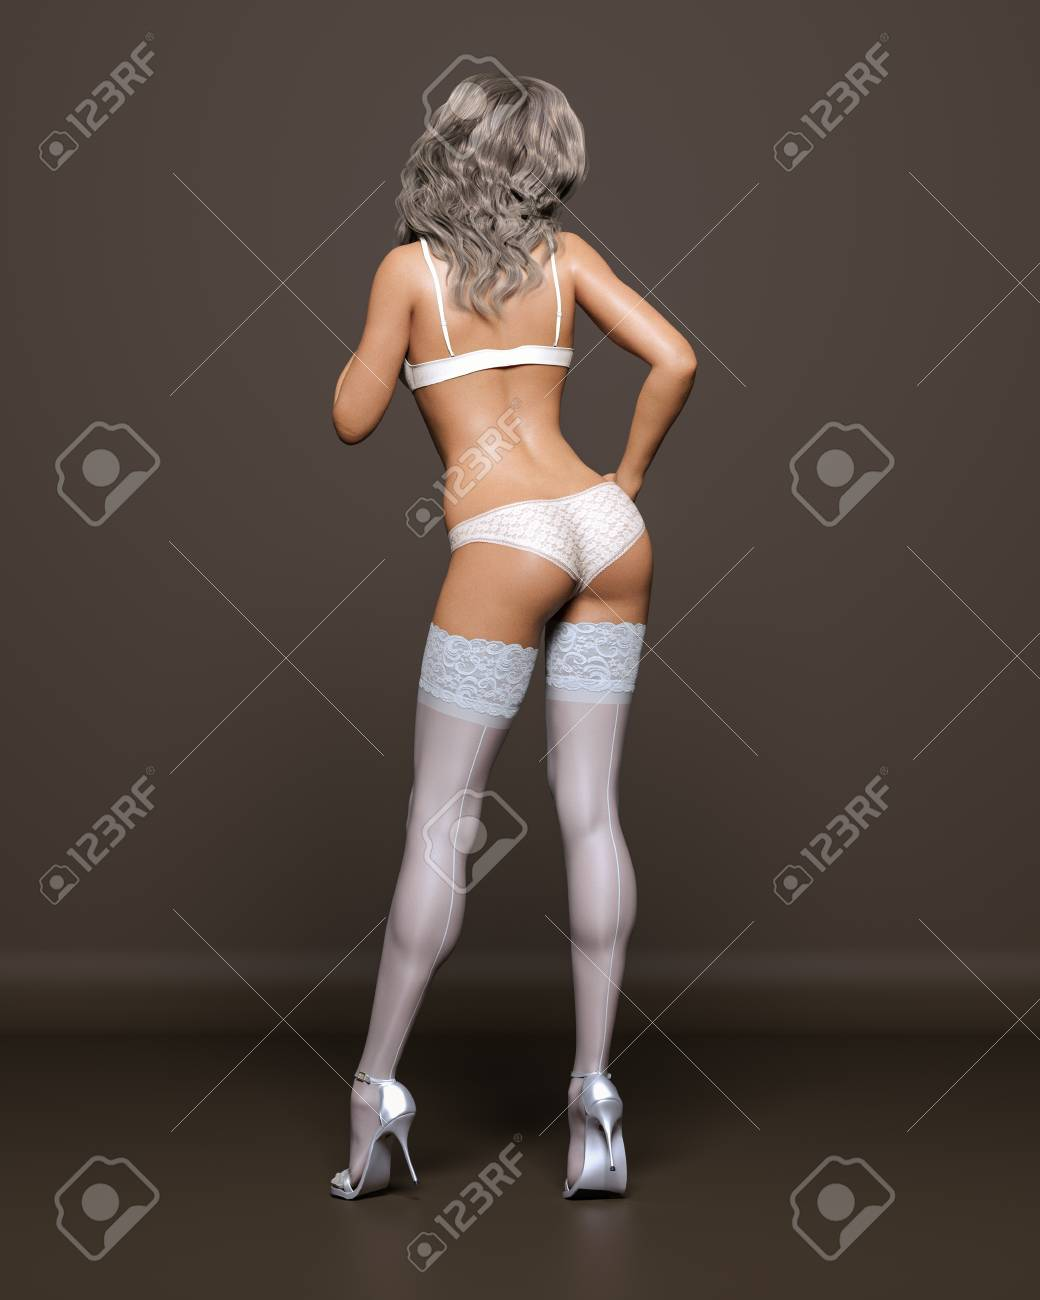 8b5688611 3D Beautiful blonde girl white lingerie and stockings dark background.Woman  studio photography.High